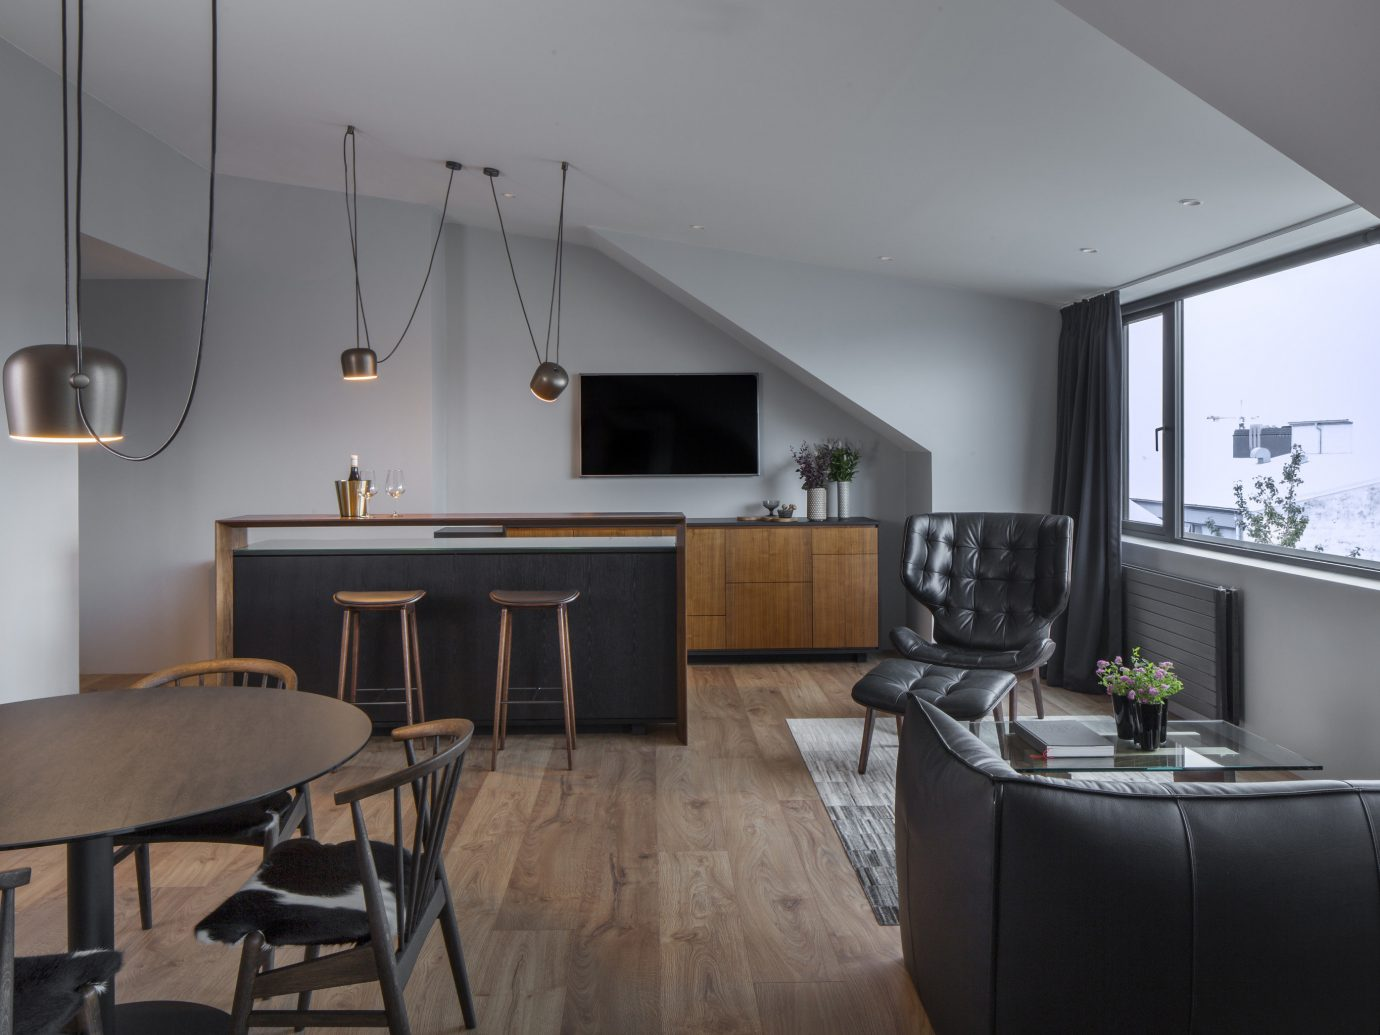 Boutique Hotels Hotels Iceland Outdoors + Adventure Reykjavík Road Trips indoor wall floor room chair interior design ceiling Architecture Living living room table loft real estate house interior designer apartment furniture area